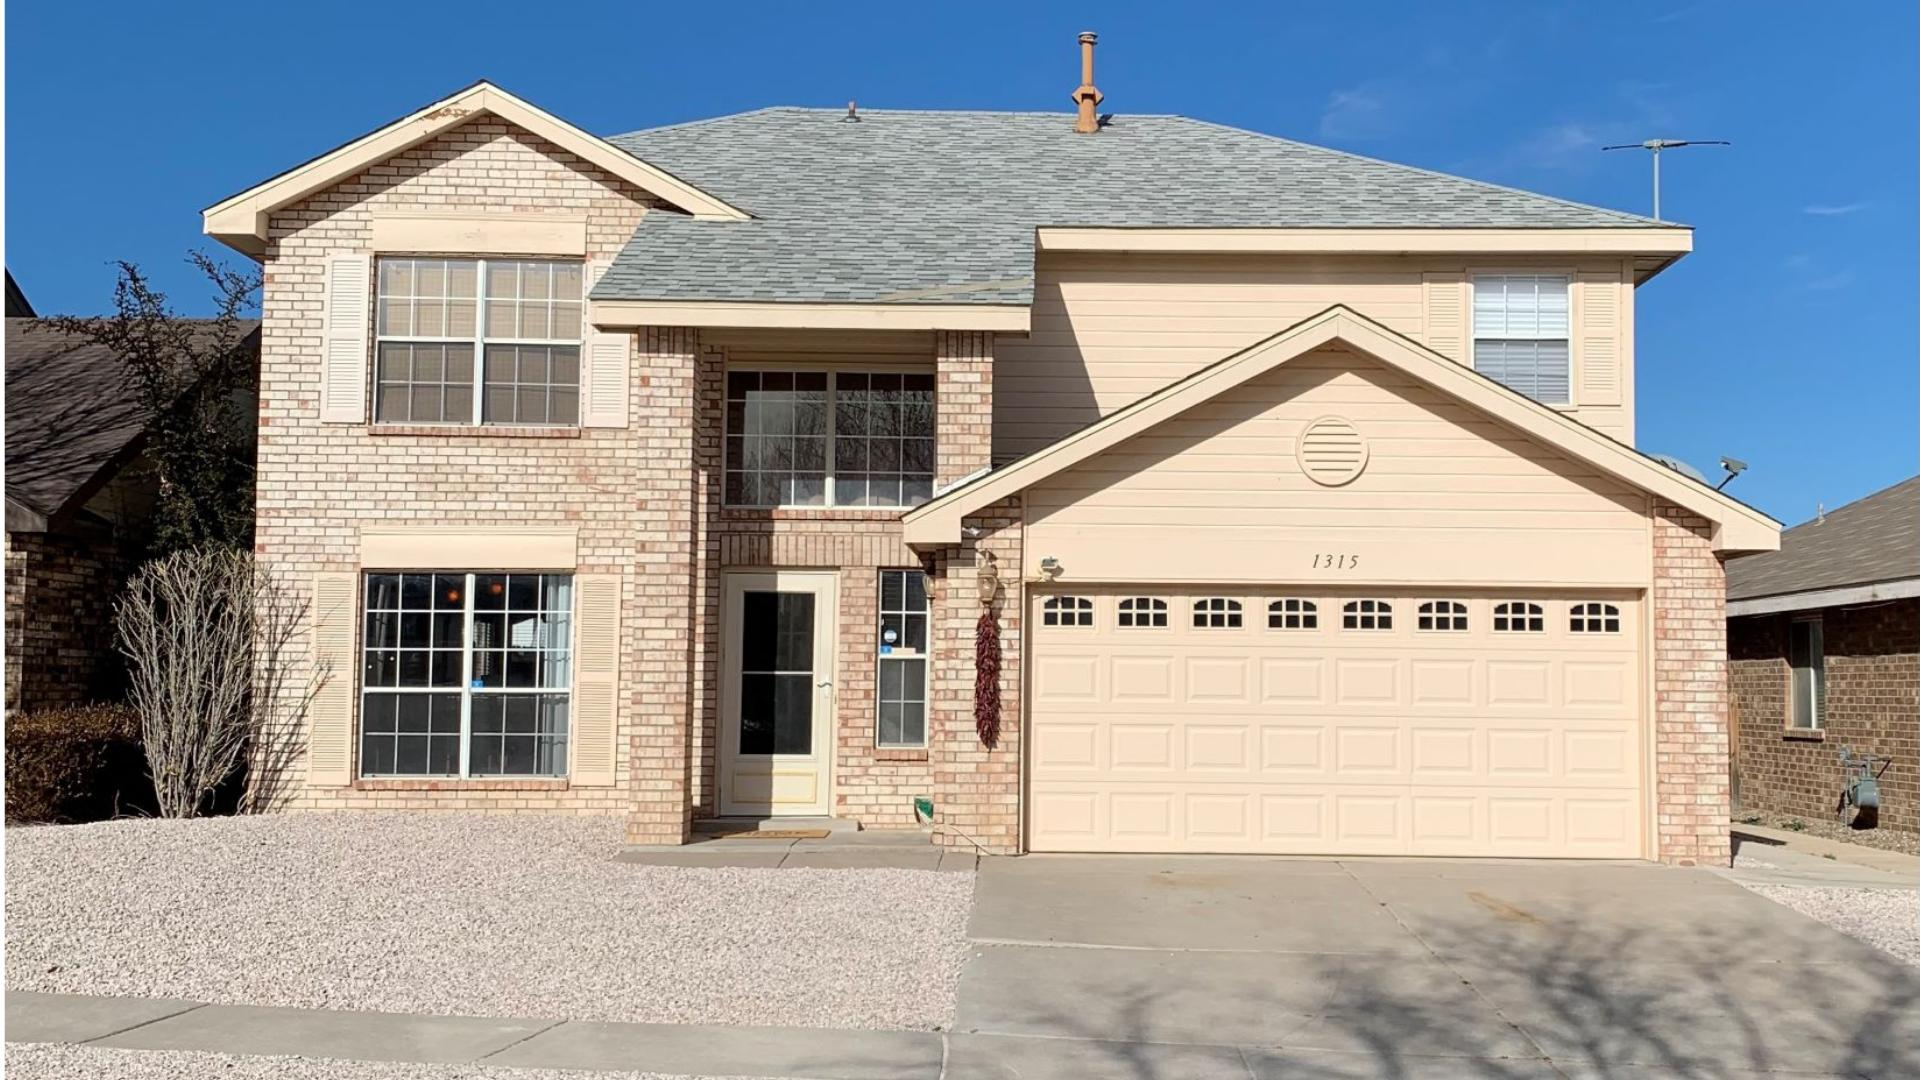 This well kept 2 story home is located near I-40 for easy freeway access. The property has great curb appeal. This home offers 3 bedrooms possible 4, 2 baths, 2 living areas, and an open concept floor plan. Granite countertop in the kitchen. Enjoy the mountain views from the deck. Backyard patio, basketball court and dog run. New roof installed in 2017. This property is priced to sell and will not last long!